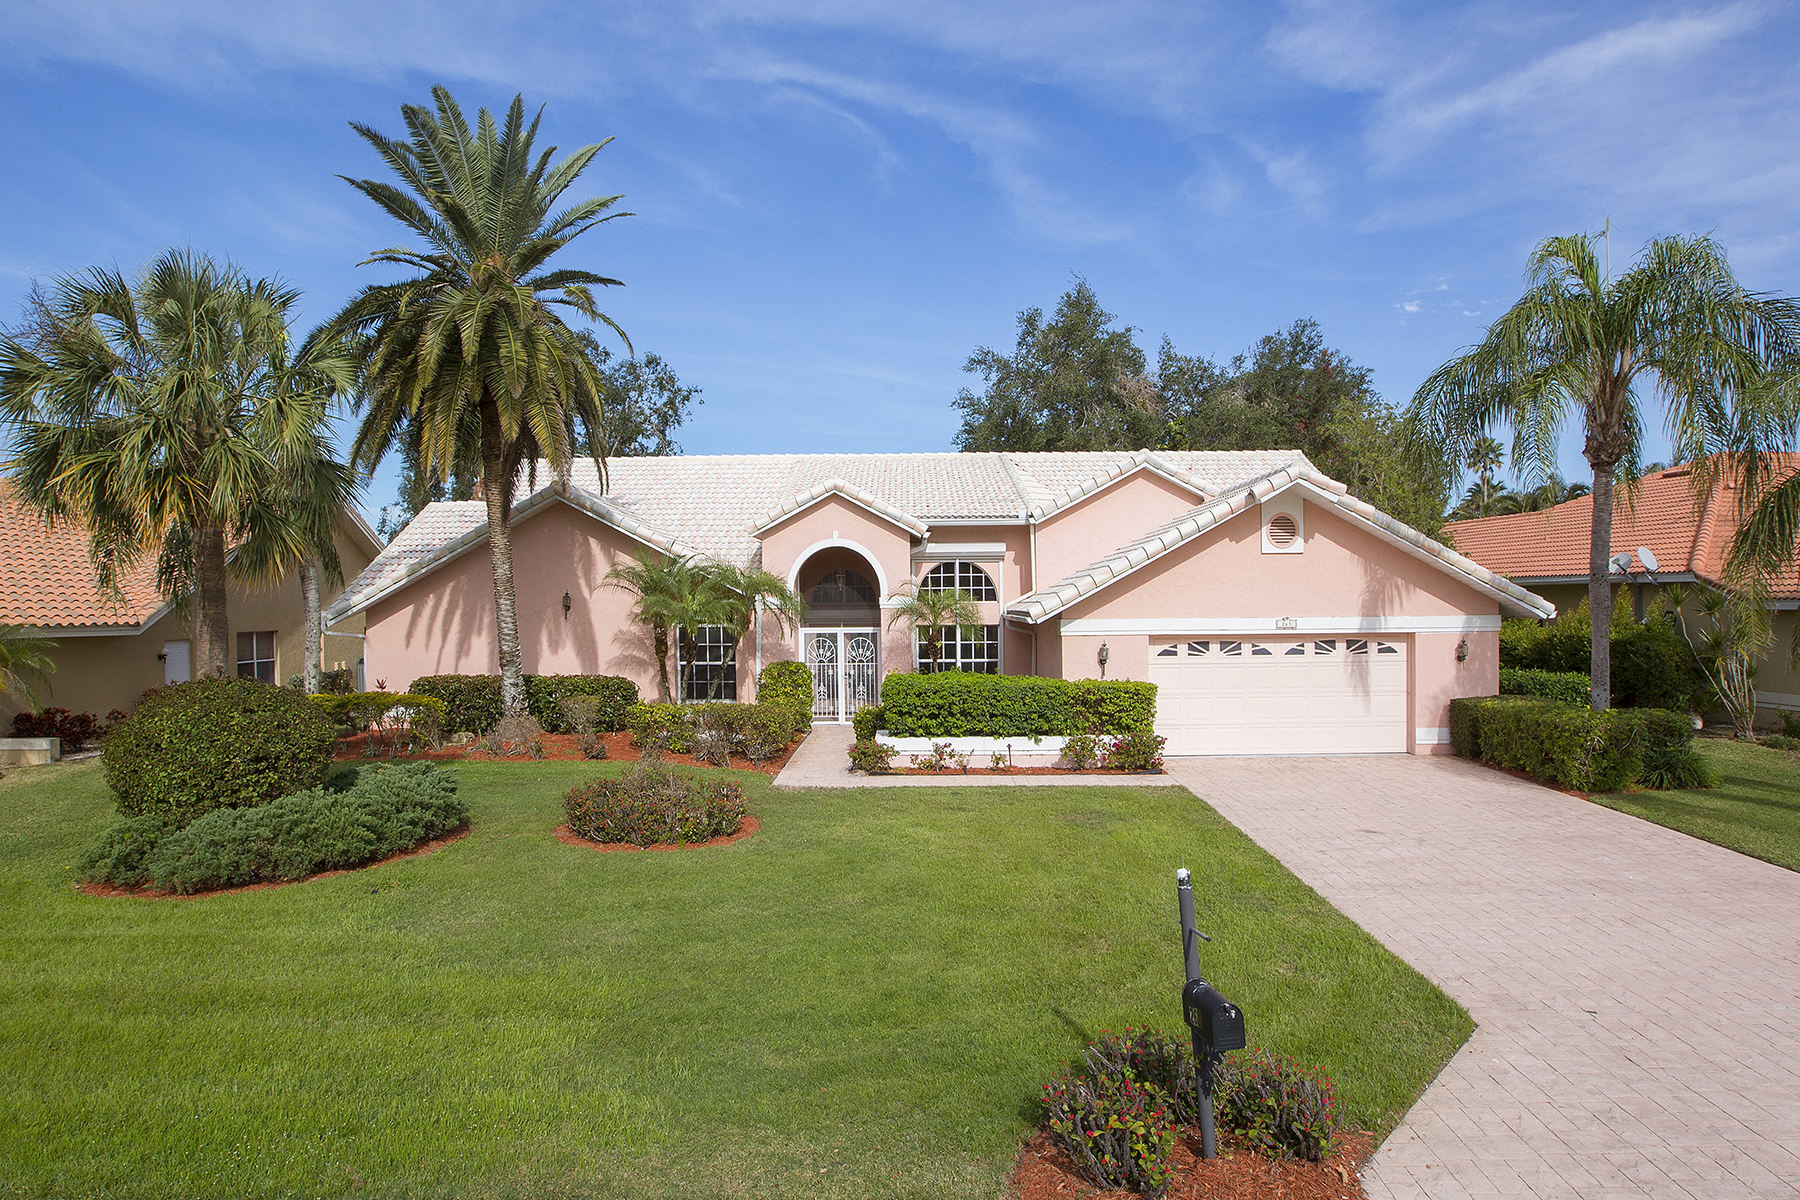 Single Family Home for Sale at Naples 263 Henley Dr, Naples, Florida, 34104 United States